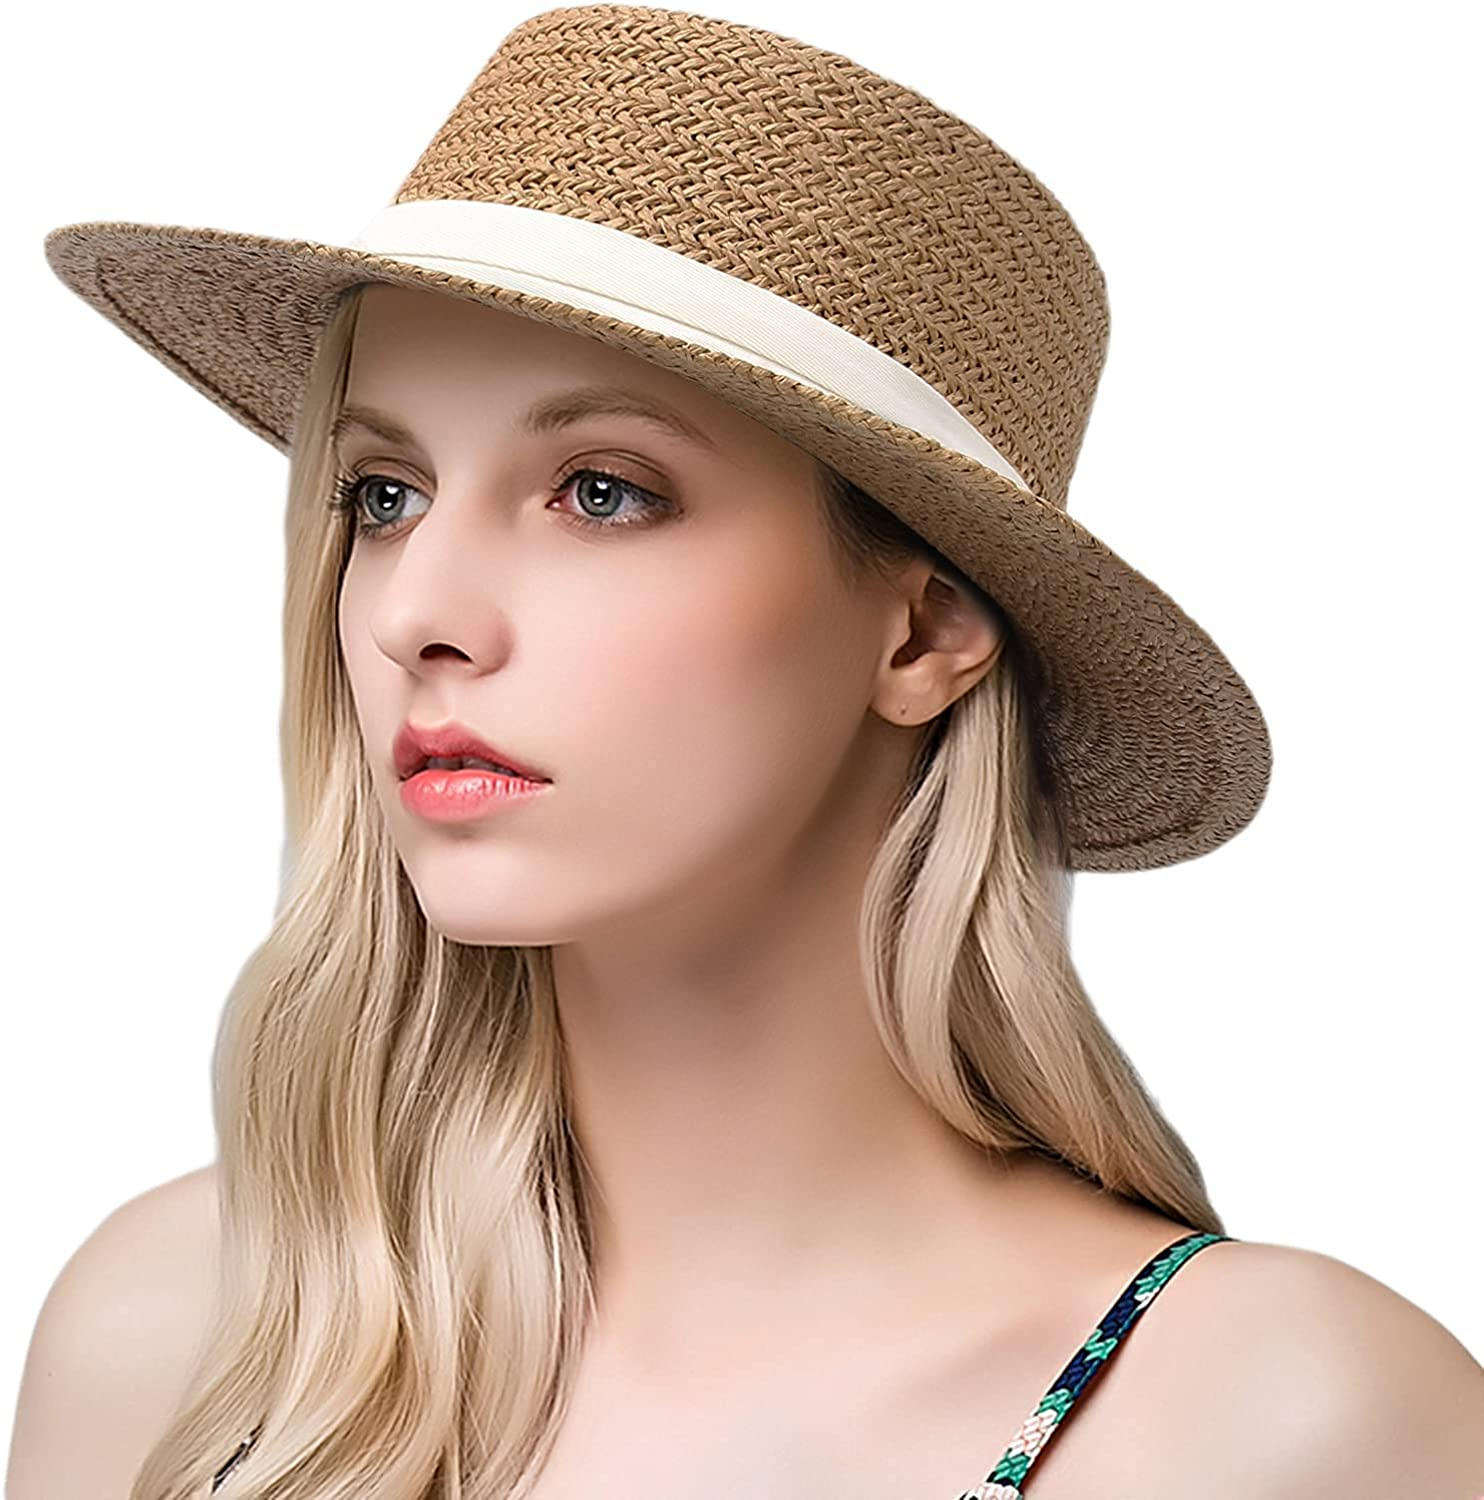 Walea Straw Fedora Hat Wide Brim Panama Sun Hat Boater Hat for Women Beach Travel Hat with bouknot Band